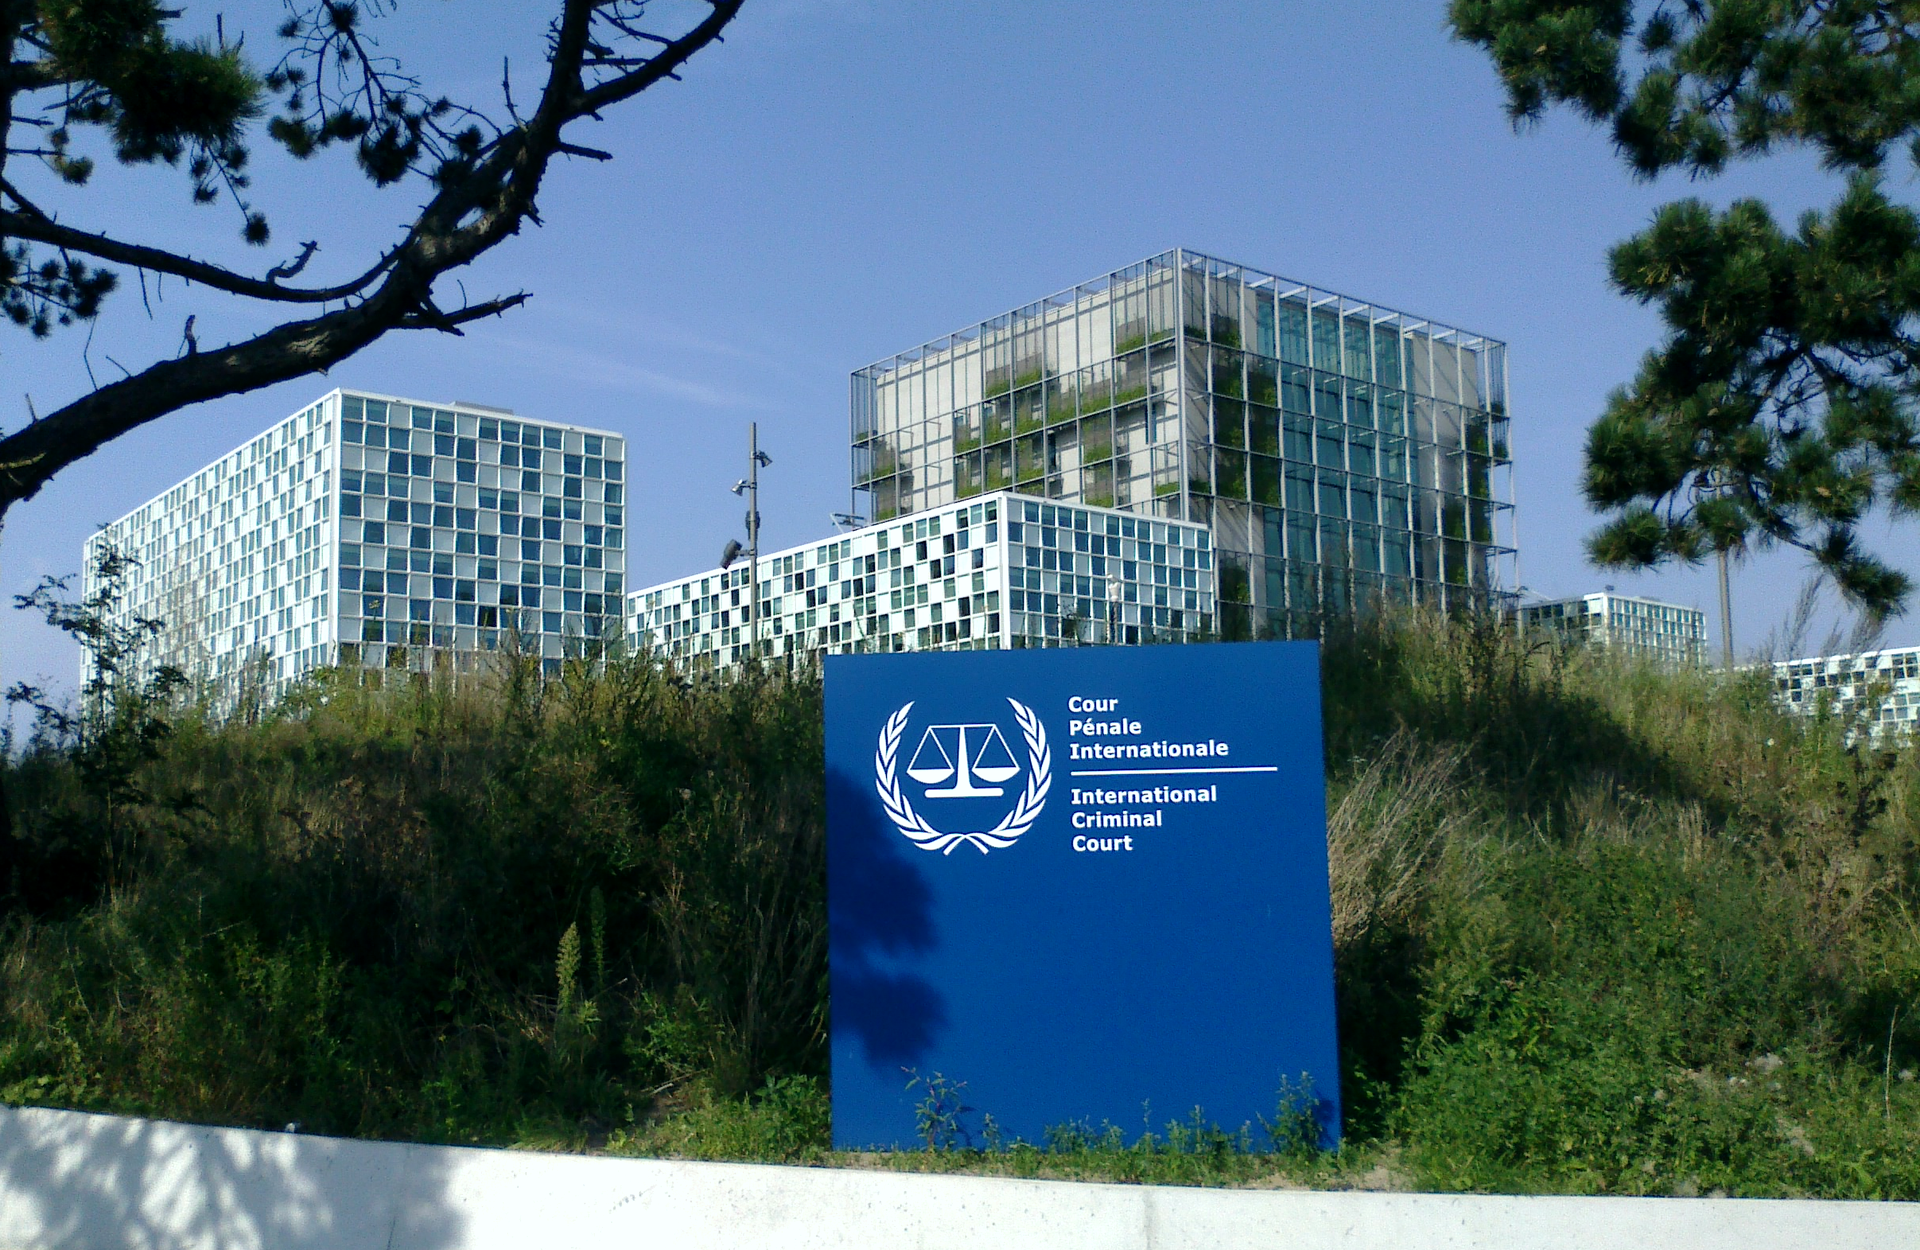 an overview of the international court of justice at the hague The hague justice portal (in french: 'portail judiciaire de la haye') is a website that promotes, and provides greater access to, the institutions, courts and organisations in the hague, the netherlands, working in the field of international peace, justice and security.